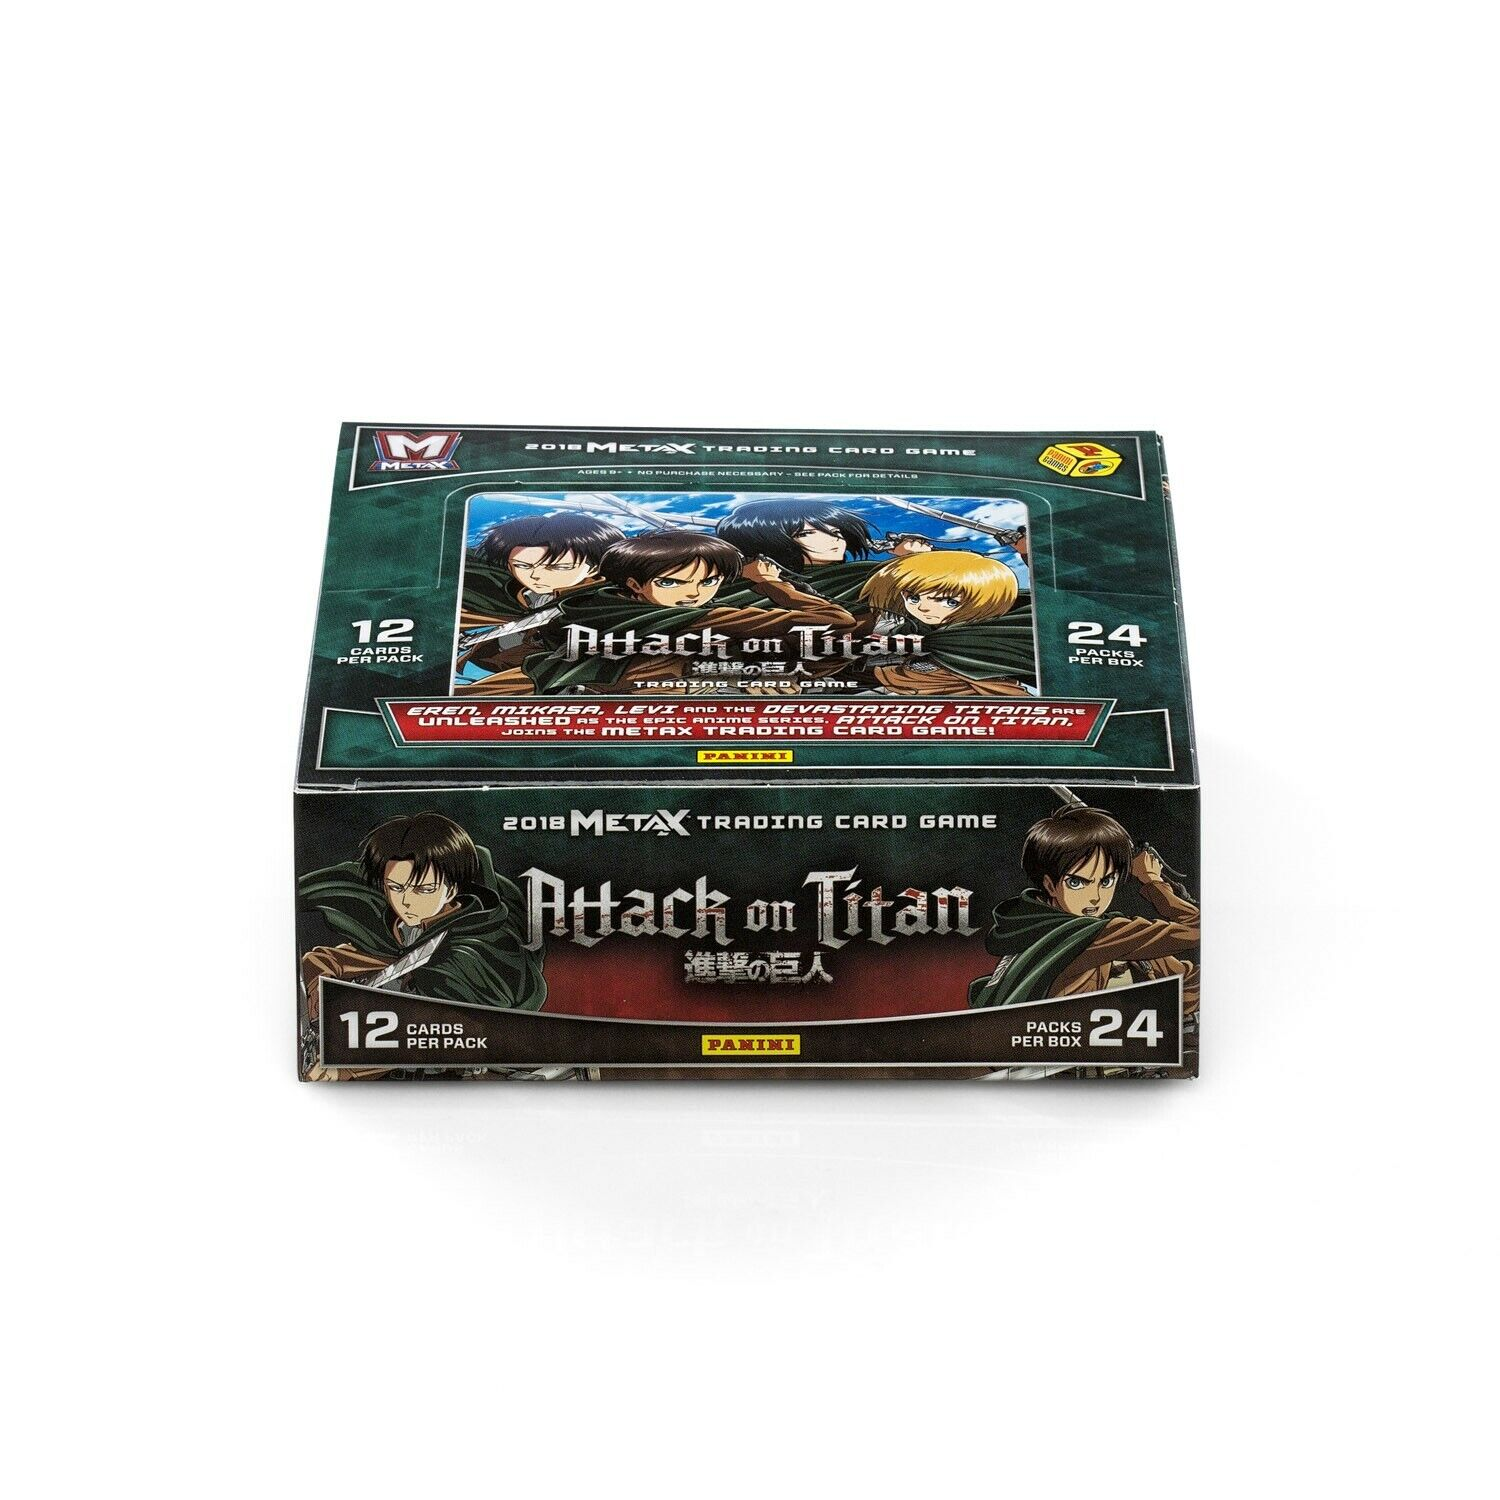 Ccg Sealed Booster Packs Meta X Attack On Titan Booster Box 24 Packs Panini Trading Card Game Metax Tcg Toys Hobbies Goothai Com